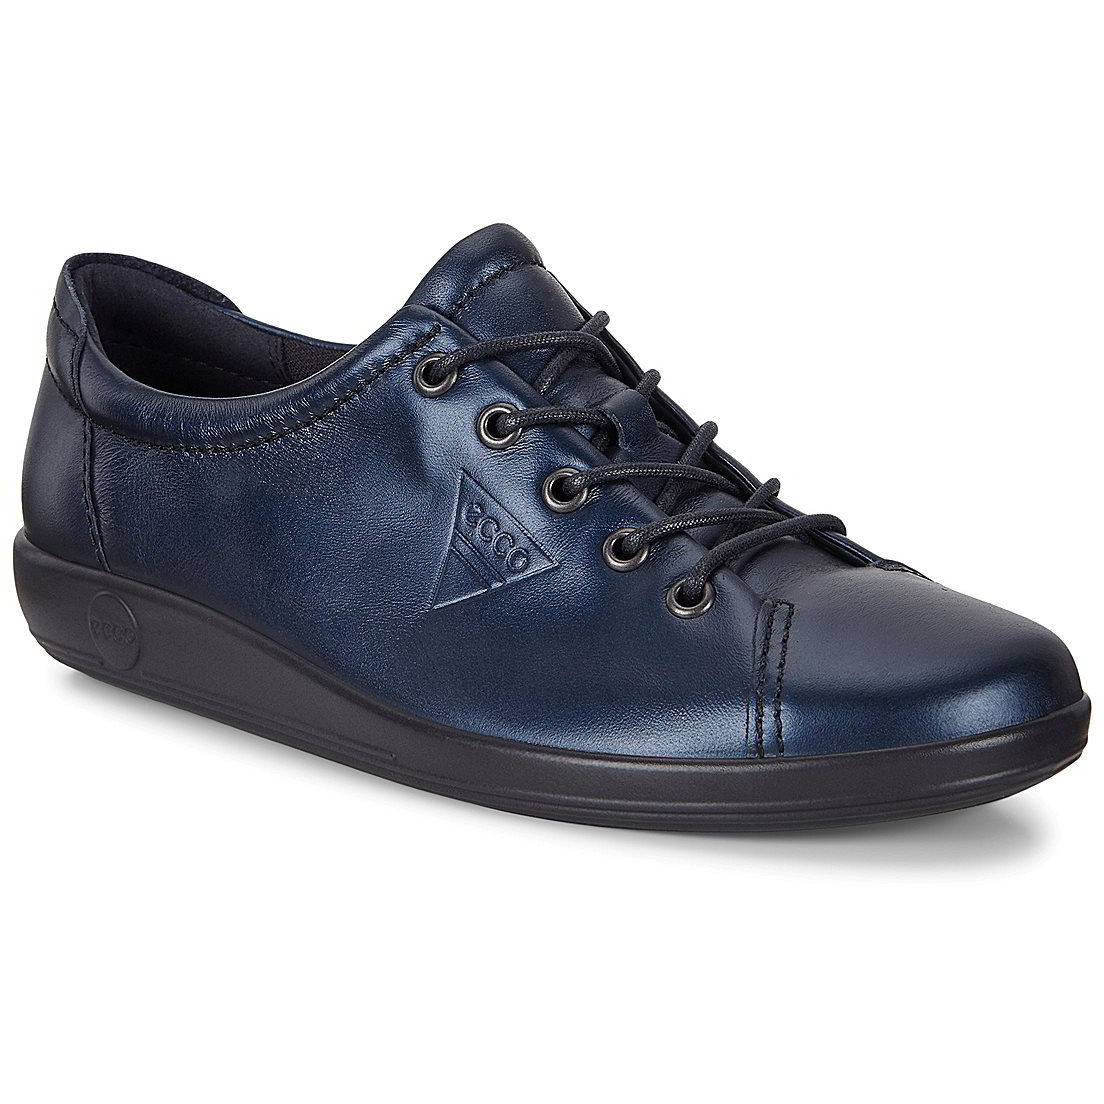 Ecco Shoes Womens Soft 2.0 Leather Shoes - Night Sky